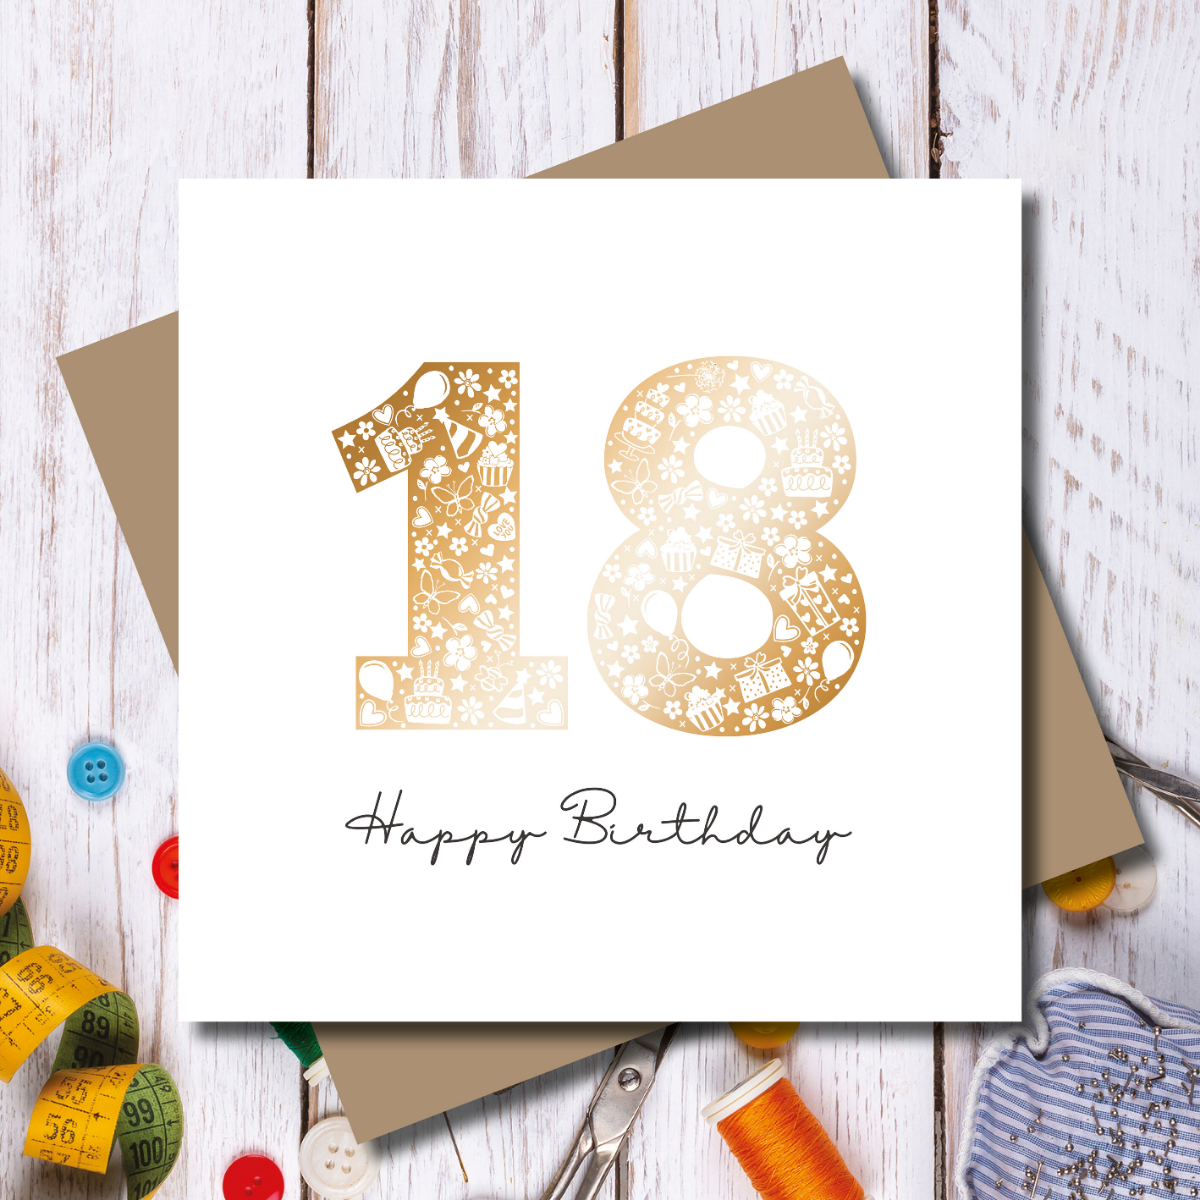 Happy Birthday Card - 18